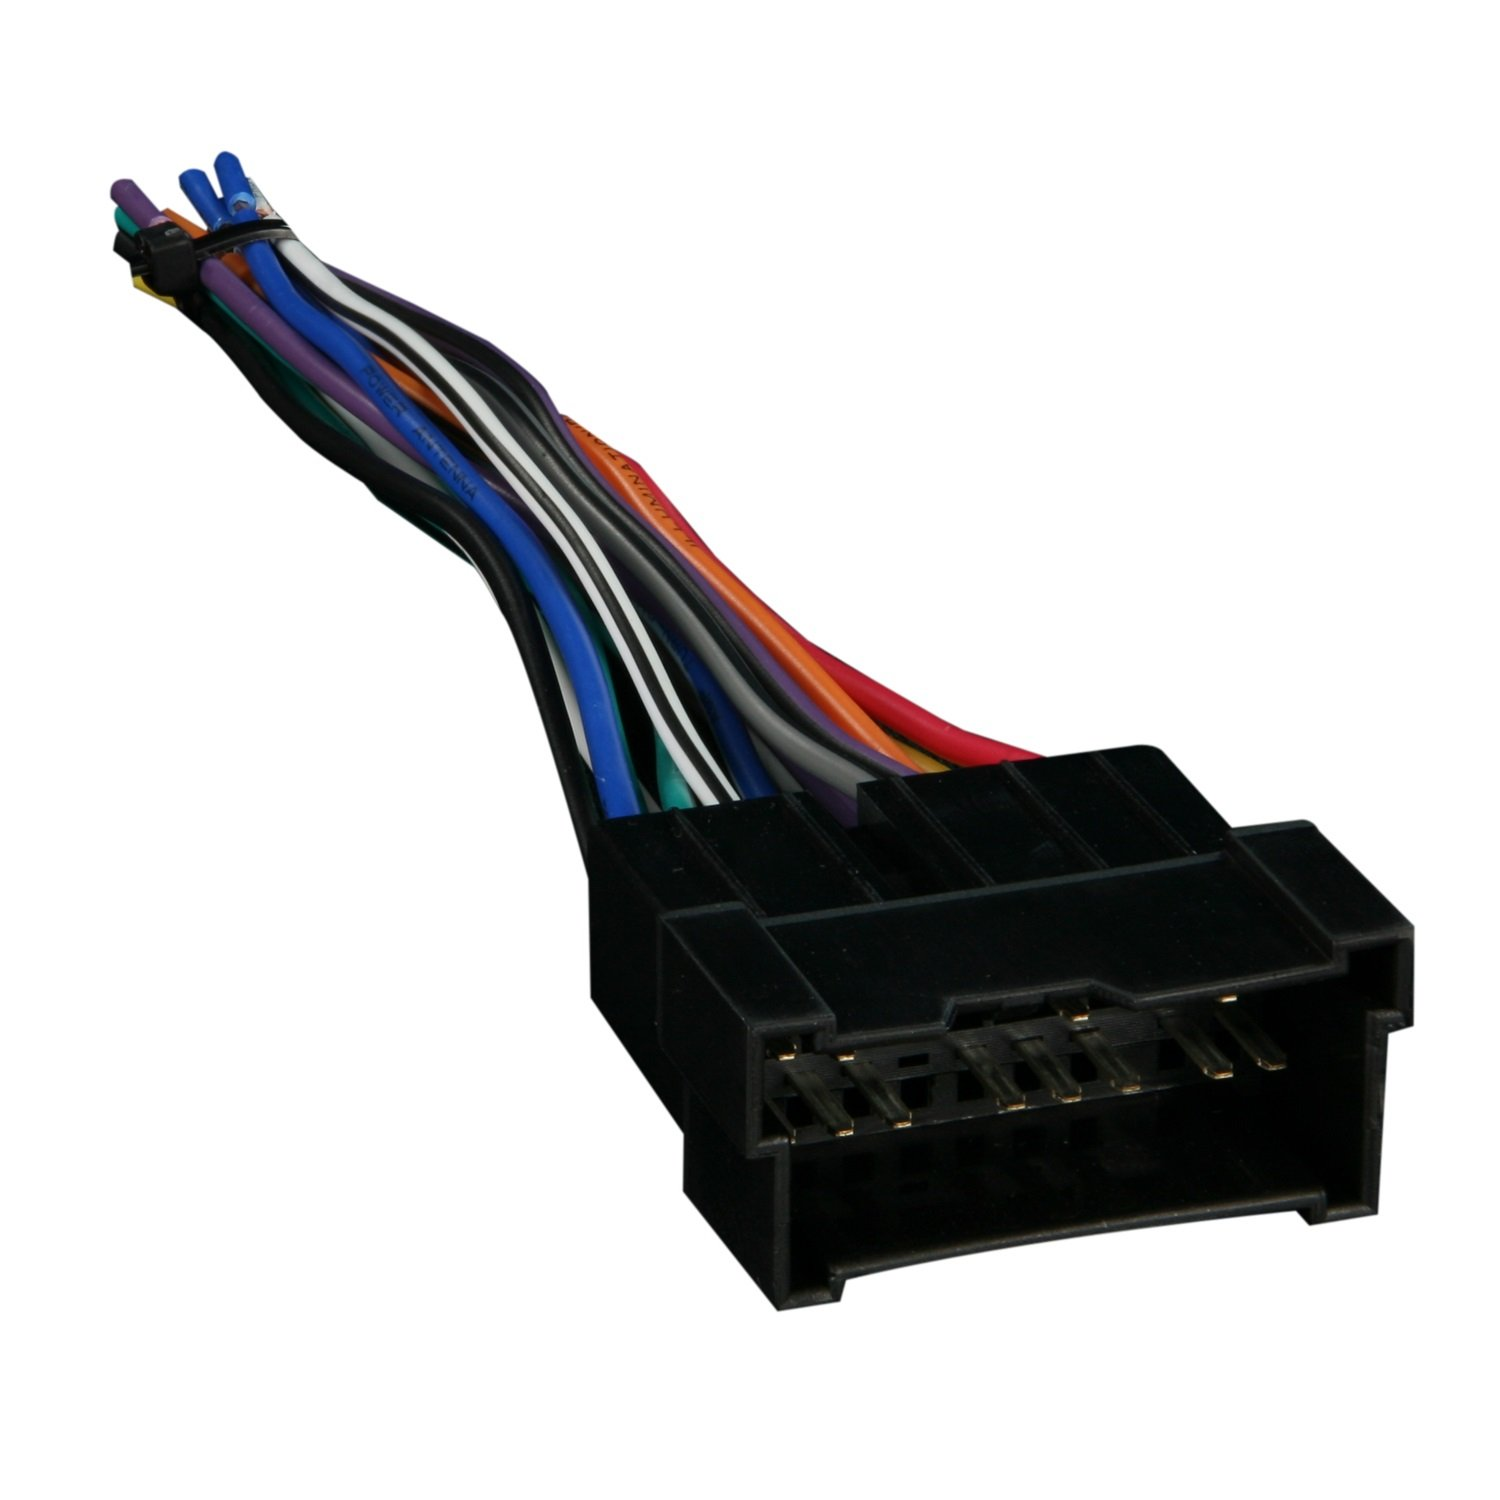 617yeBmOquL._SL1500_ amazon com metra 70 7301 radio wiring harness for hyundai kia 99 radio harness at aneh.co